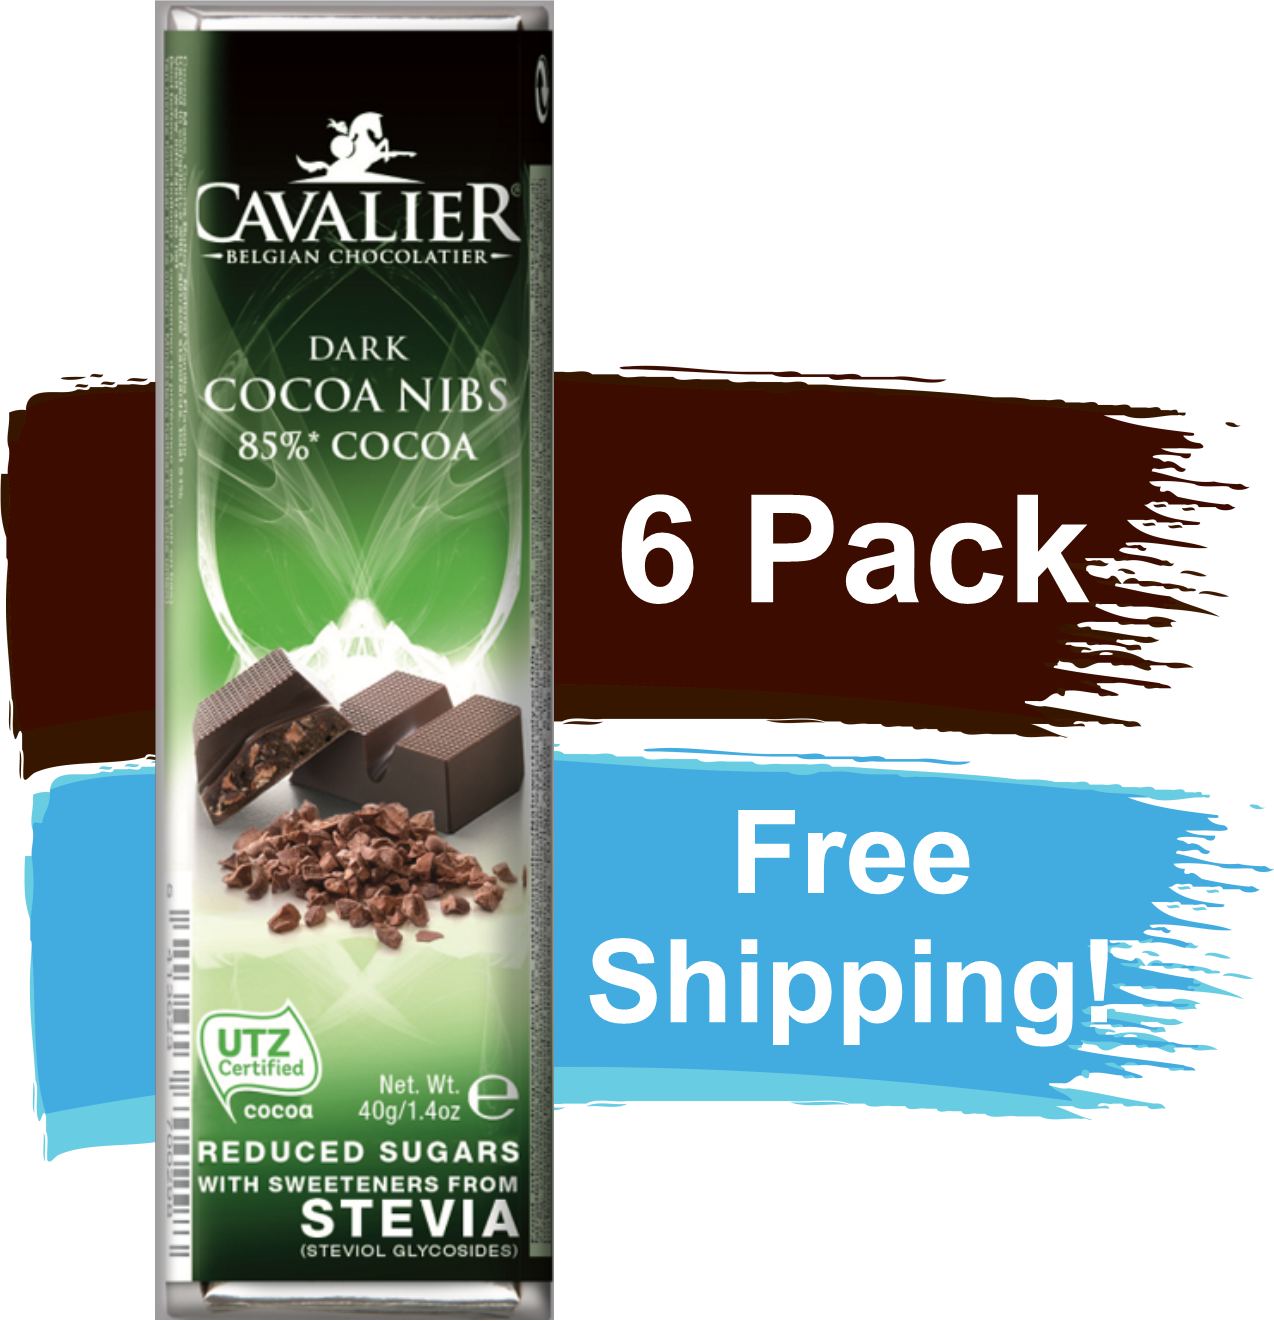 Cavalier Chocolate Reduced Sugar with Stevia 85% Dark Chocolate Cocoa Nibs 6 Pack